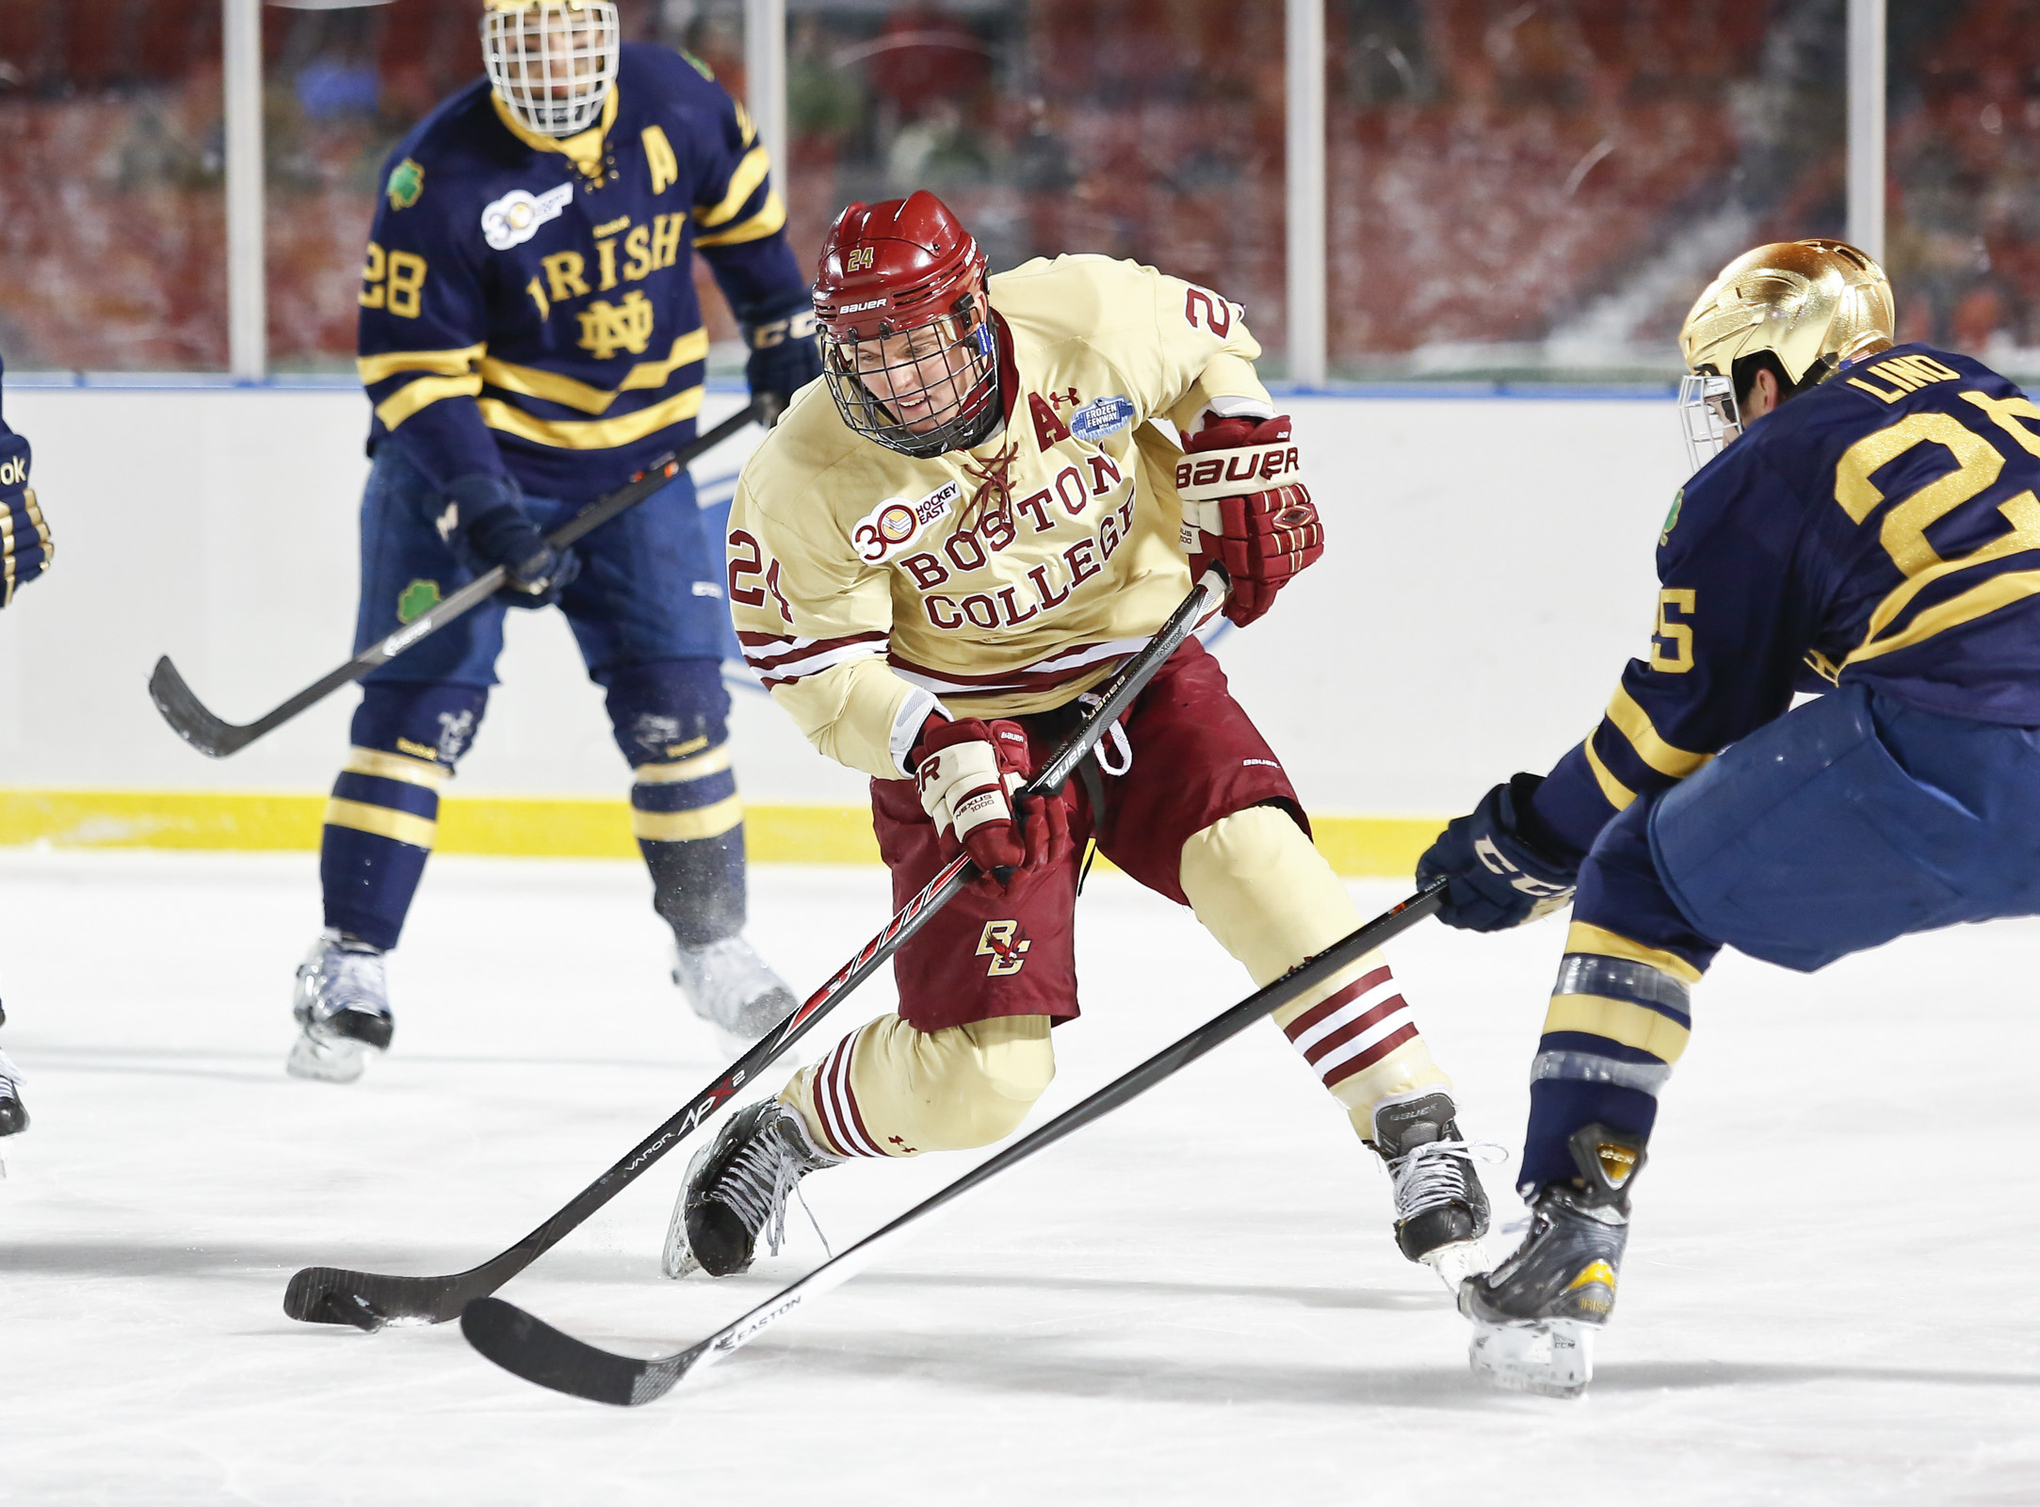 Boston College senior Bill Arnold fires a shot against Notre Dame in the first matchup between the two schools this season.